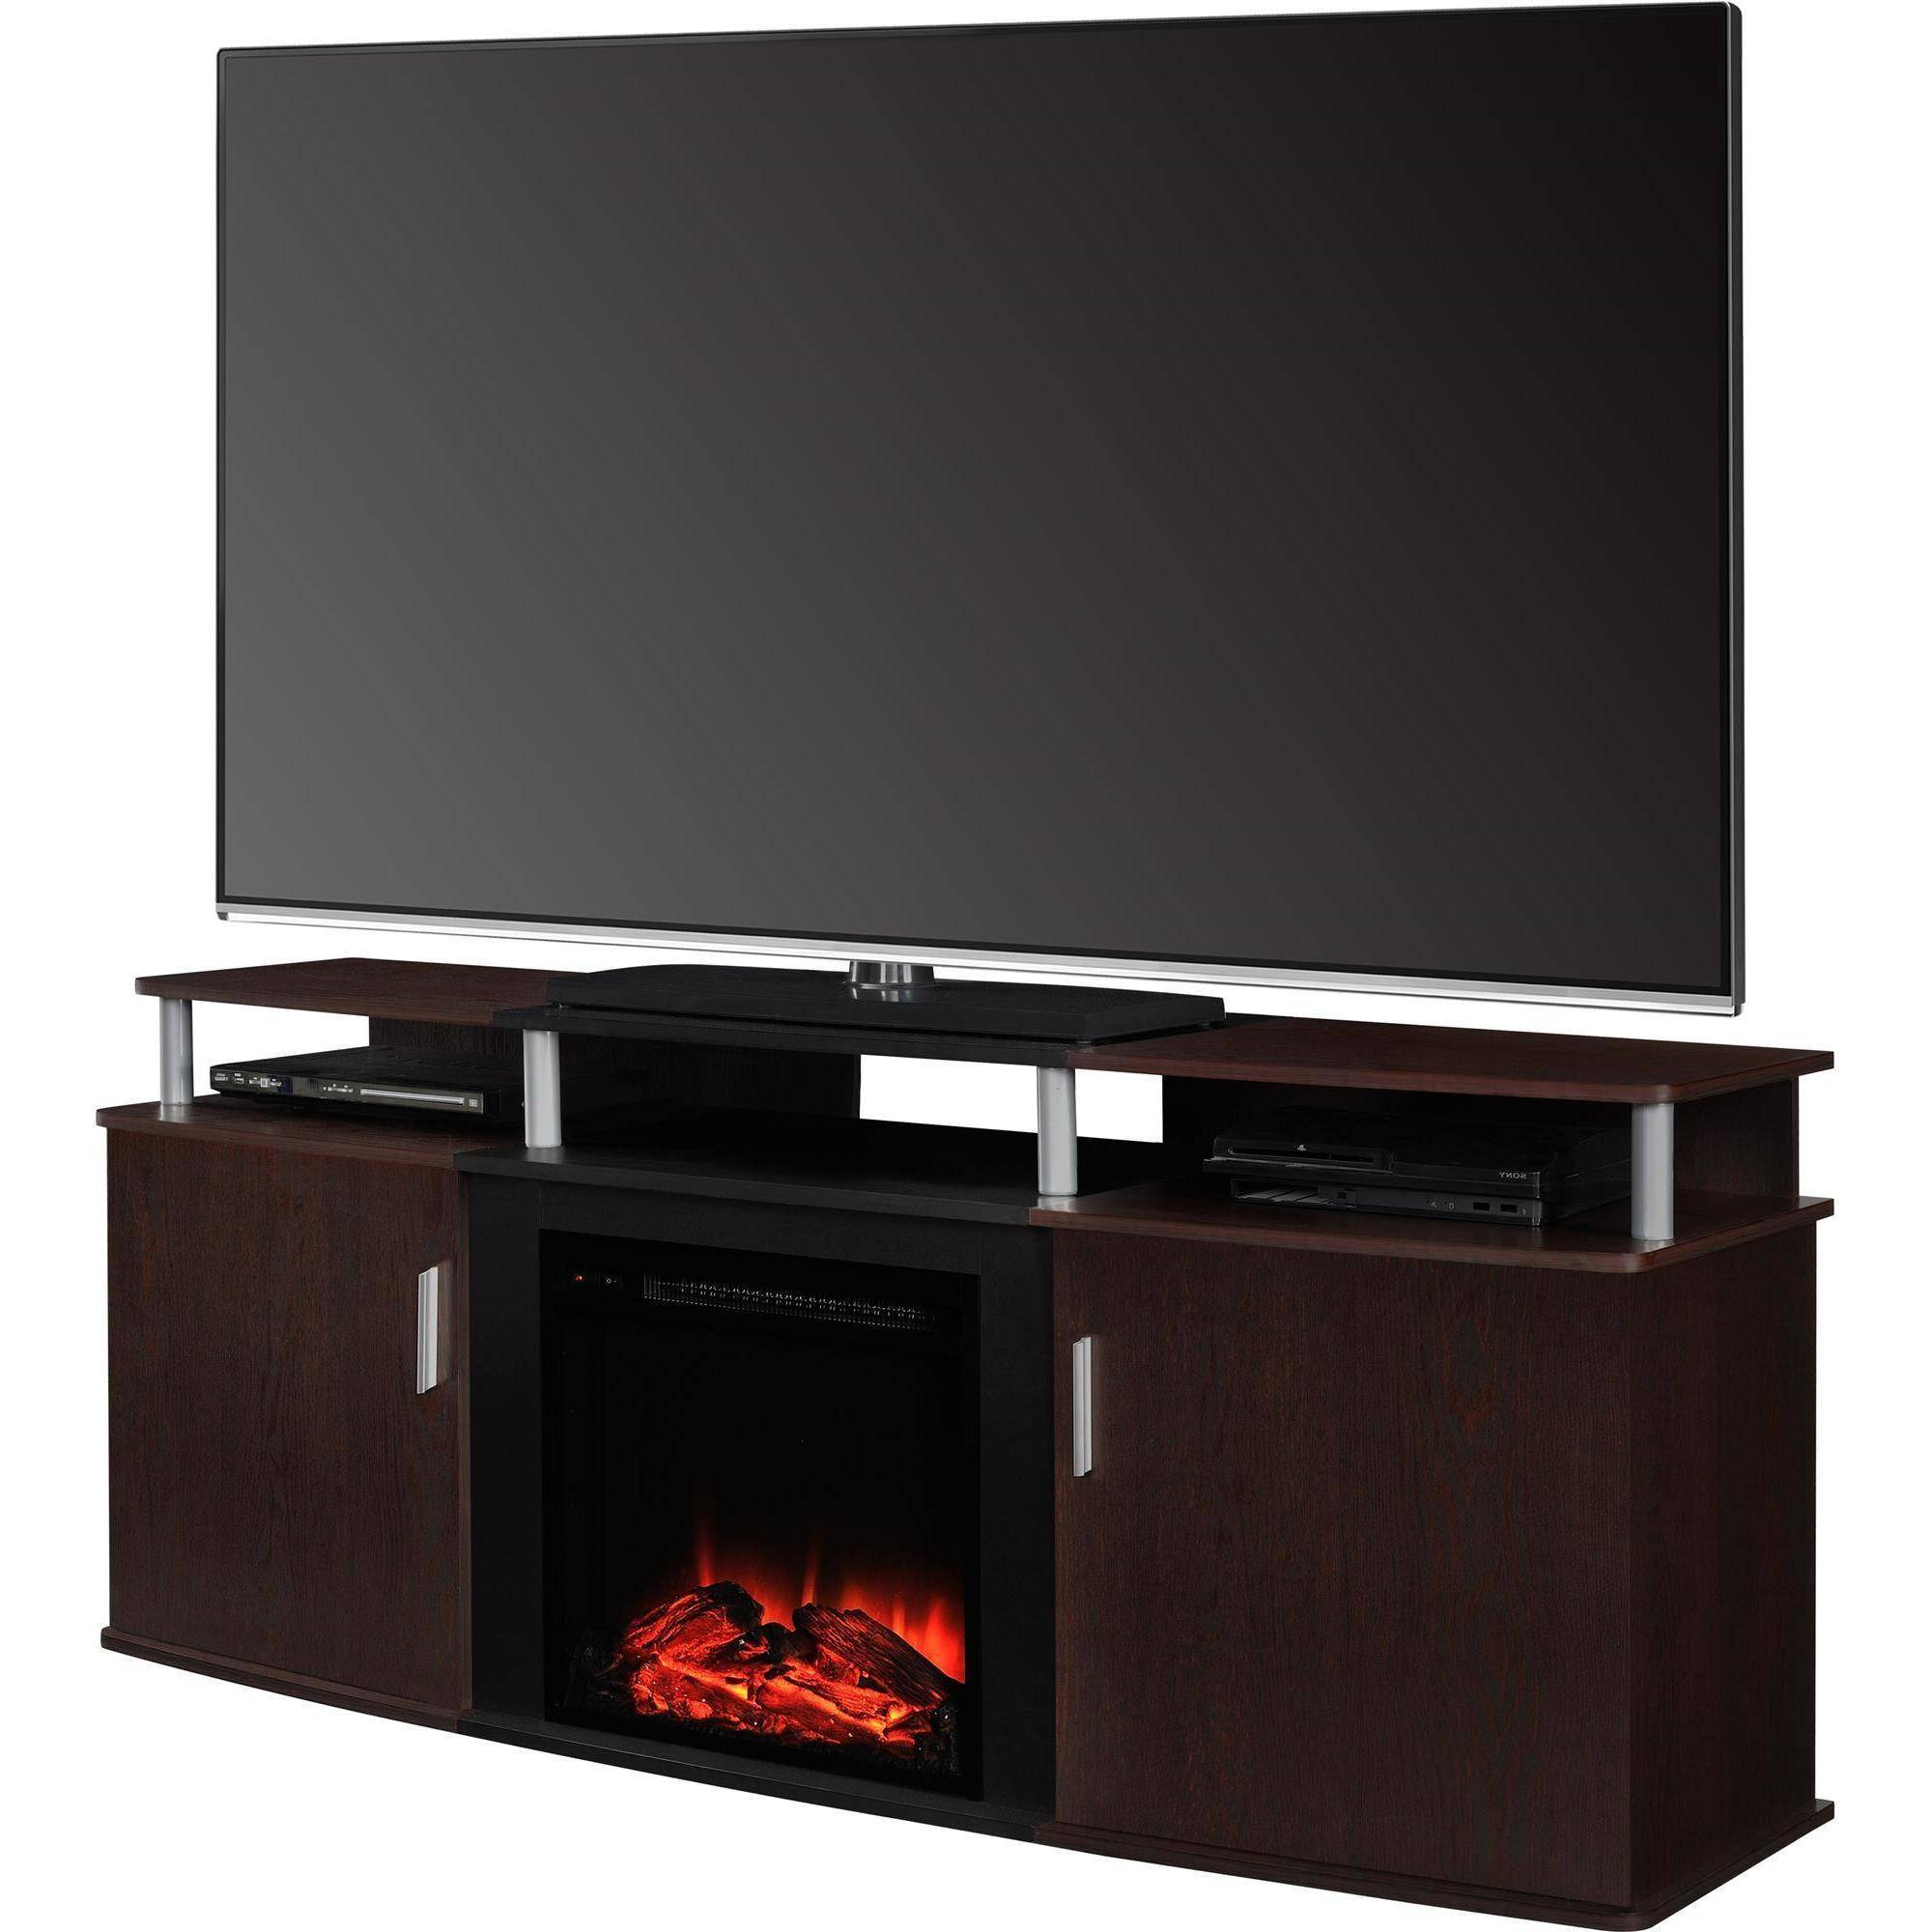 Tv Stands For 70 Inch Tvs With Regard To Most Current Tv Stands 70 Inch Corner For Tvs Over Inches Wide Amazon Whitewash (View 14 of 20)